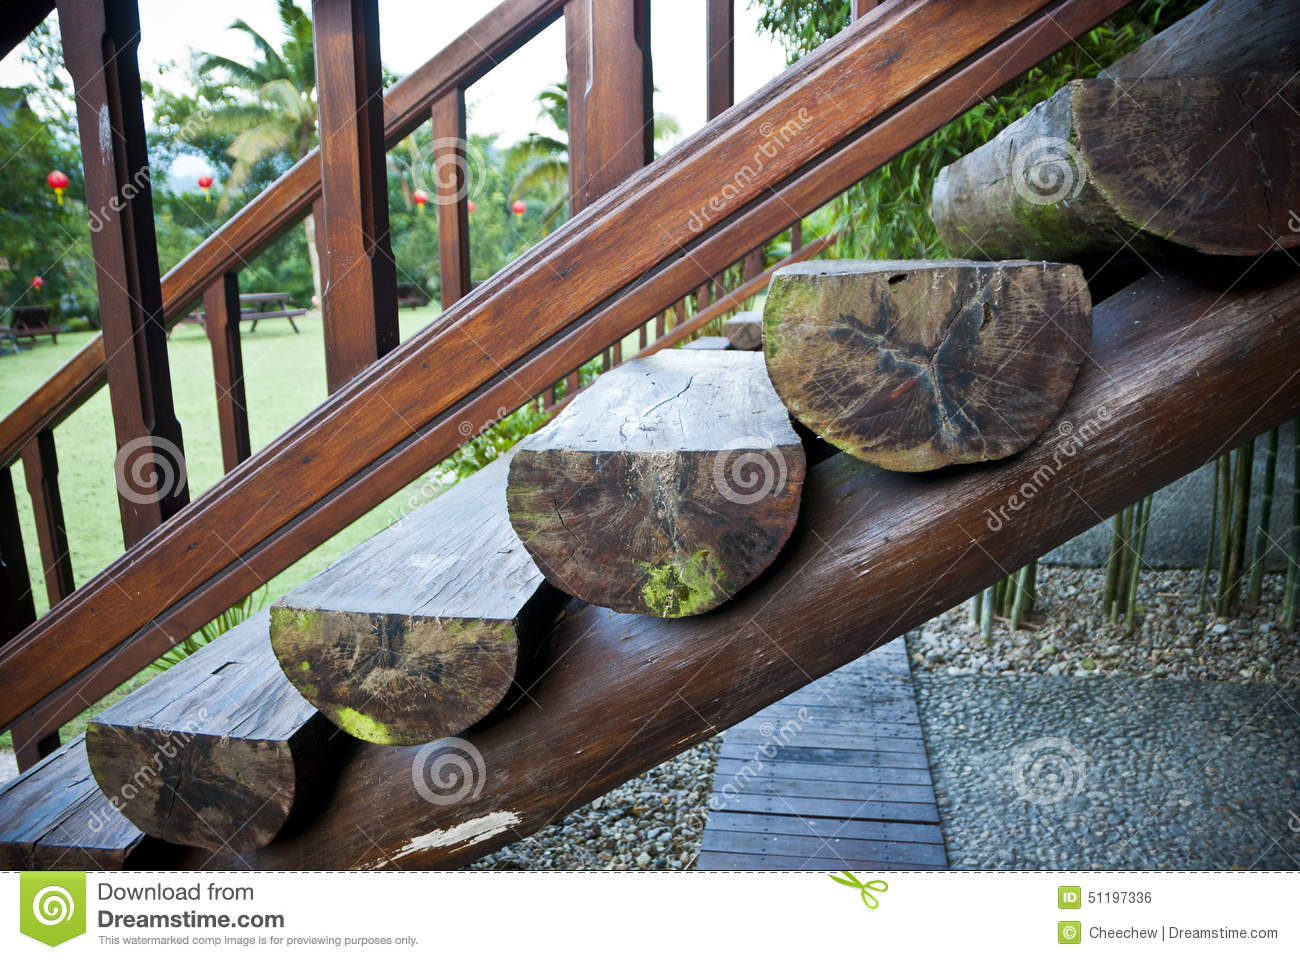 Escaliers en bois de rondins photo stock image du logs for Escalier rondin bois